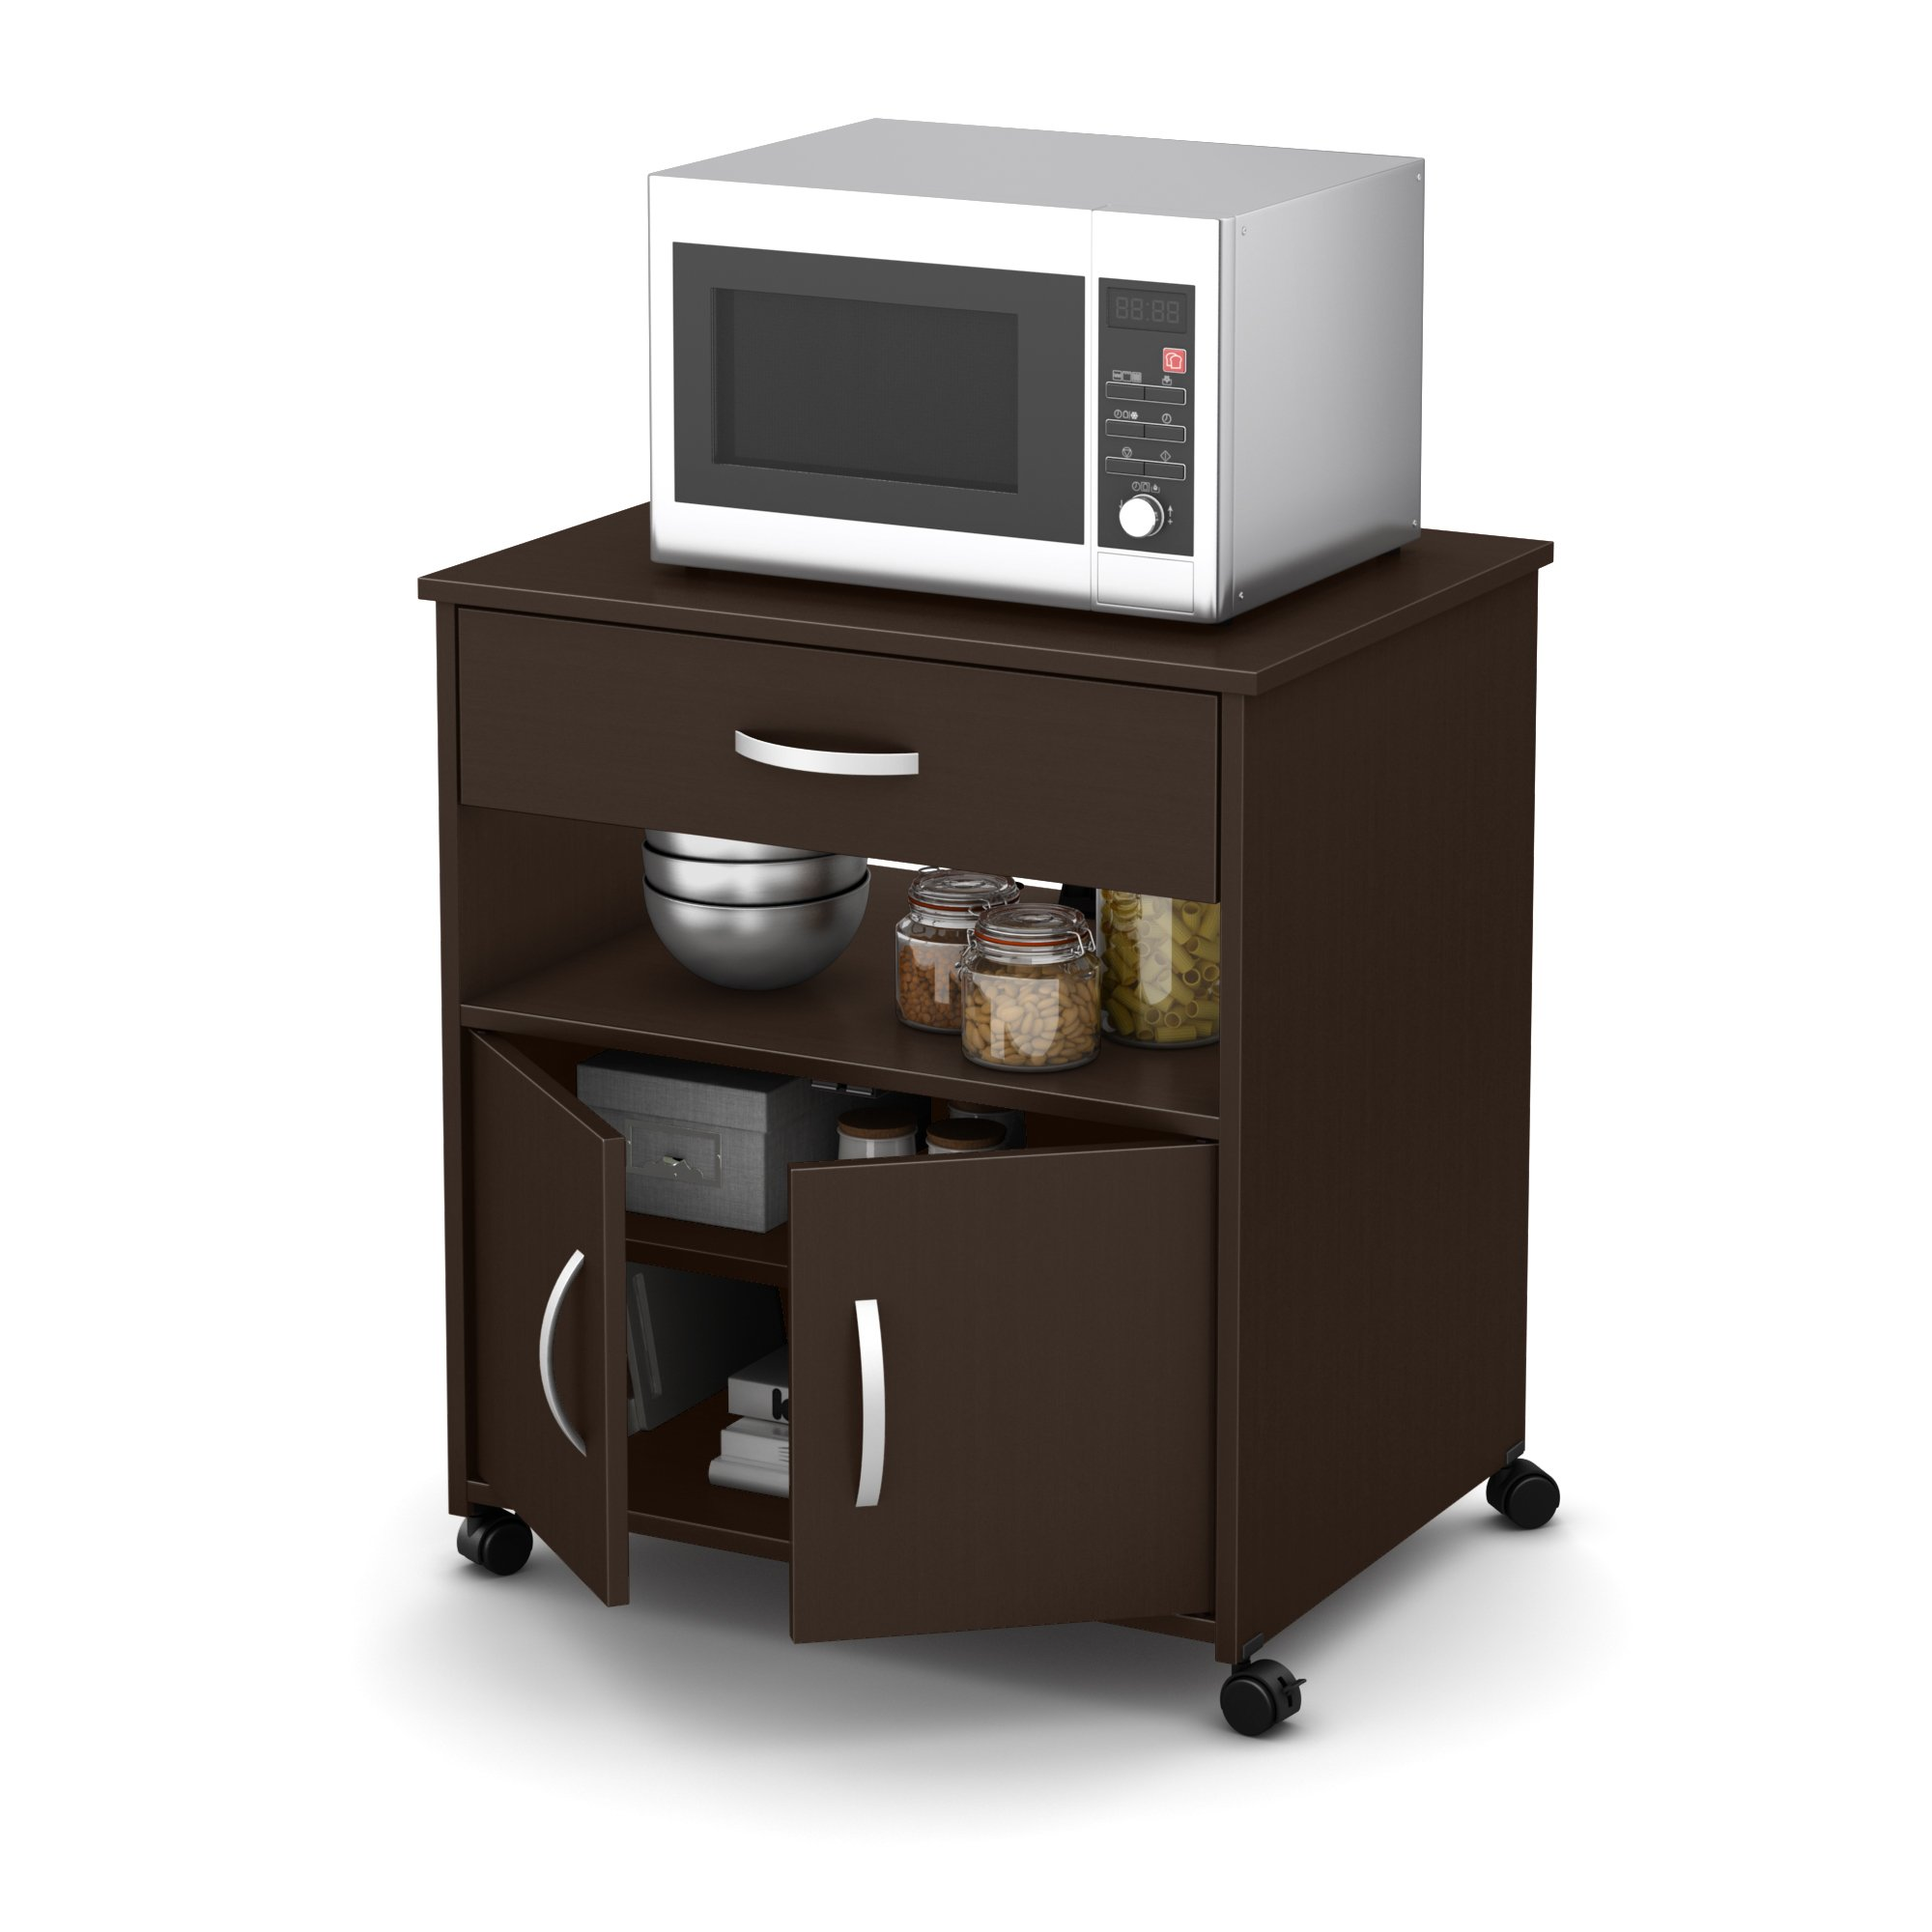 South Shore 2-Door Printer Stand with Storage on Wheels, Chocolate by South Shore